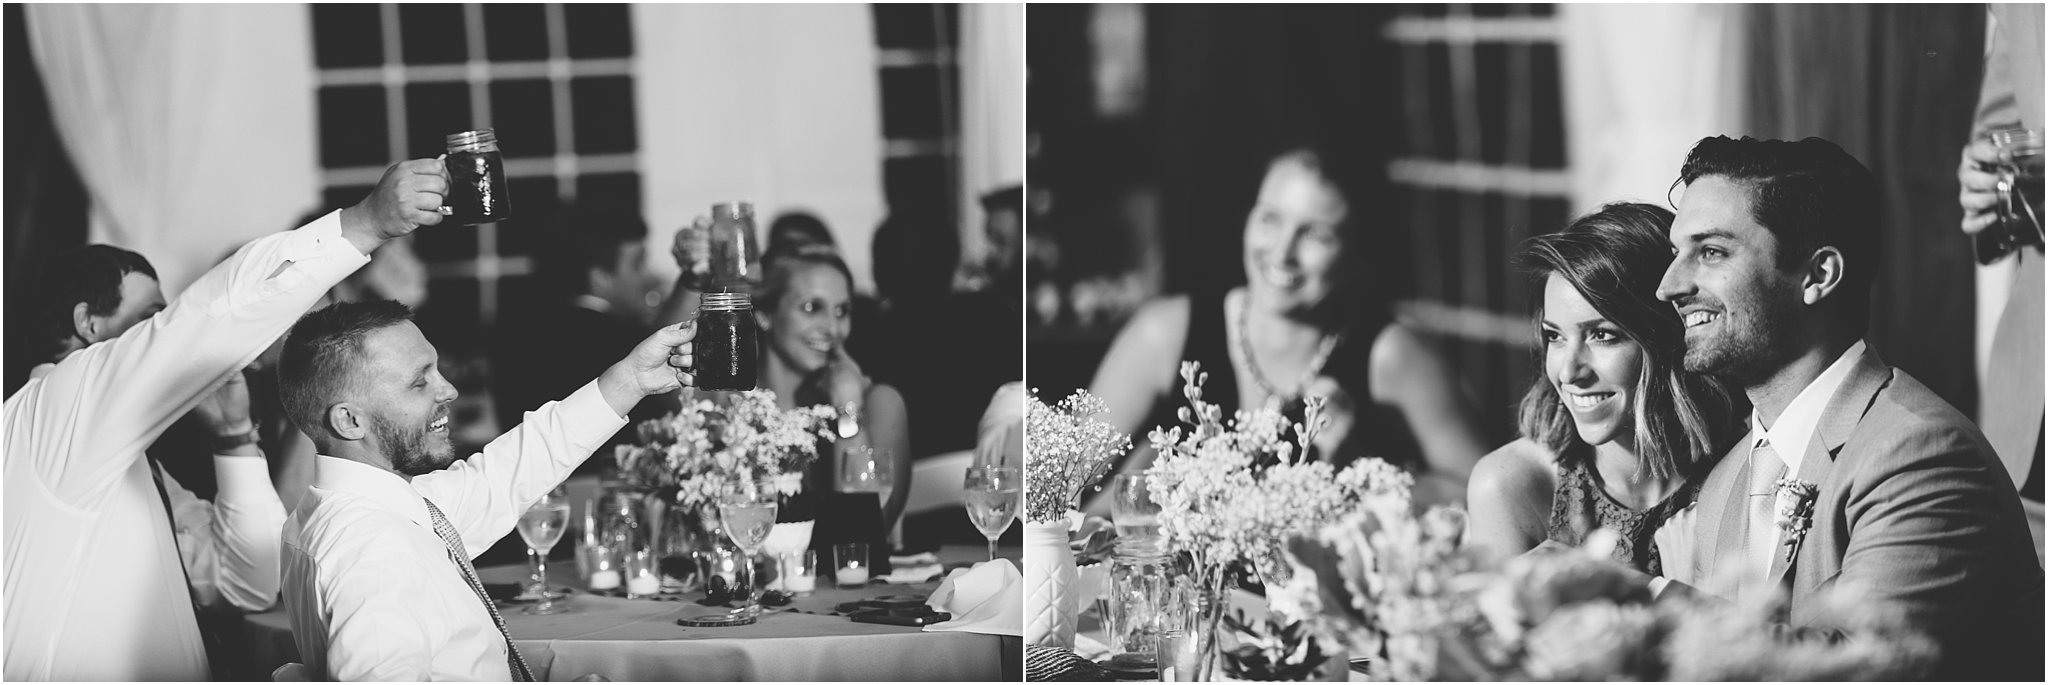 jessica_ryan_photography_holly_ridge_manor_wedding_roost_flowers_jamie_leigh_events_dhalia_edwards_candid_vibrant_wedding_colors_1365